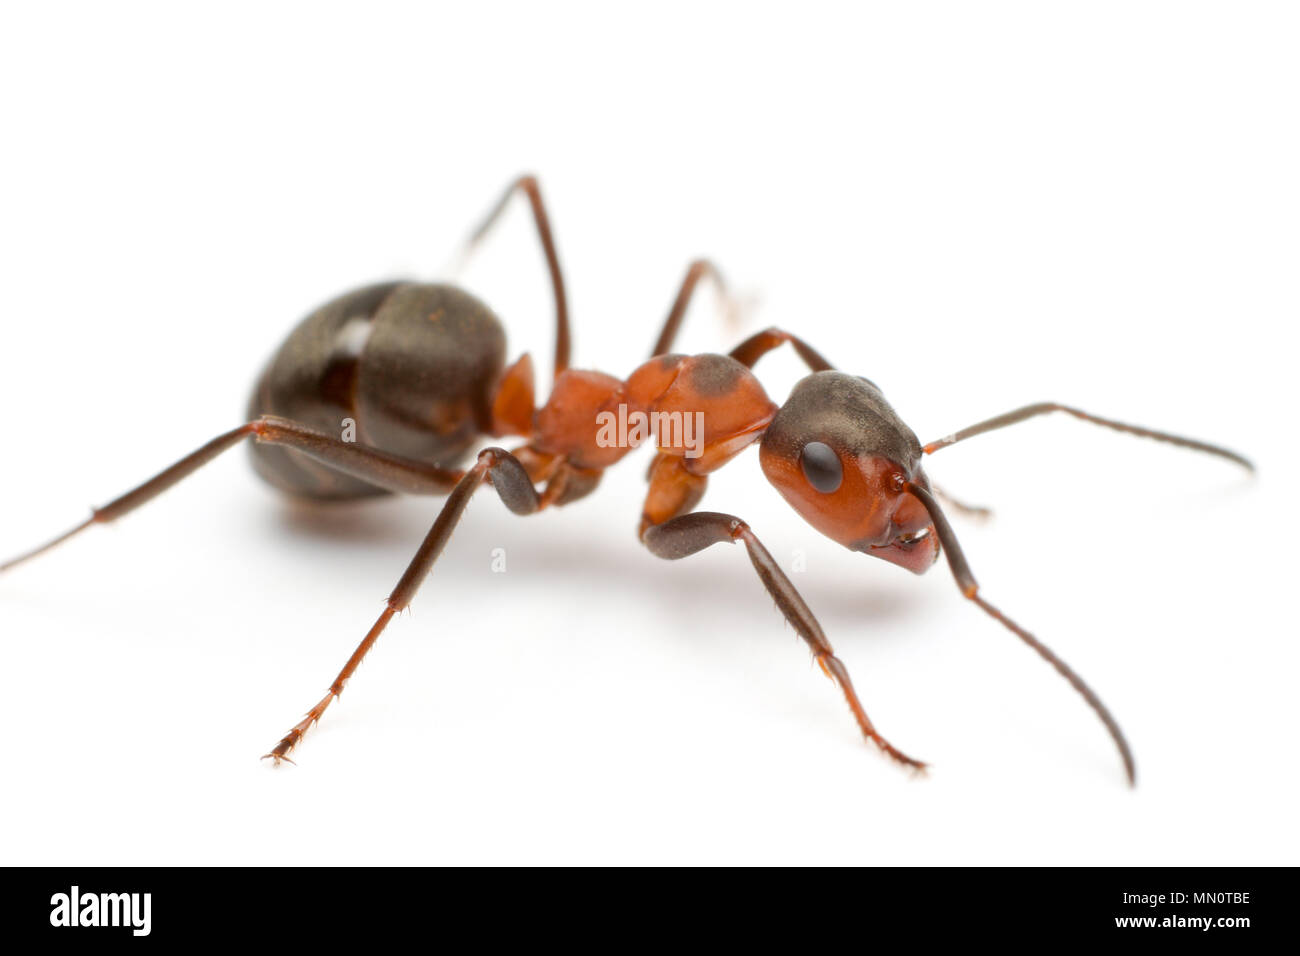 A red wood ant, Formica rufa, on a white background found in